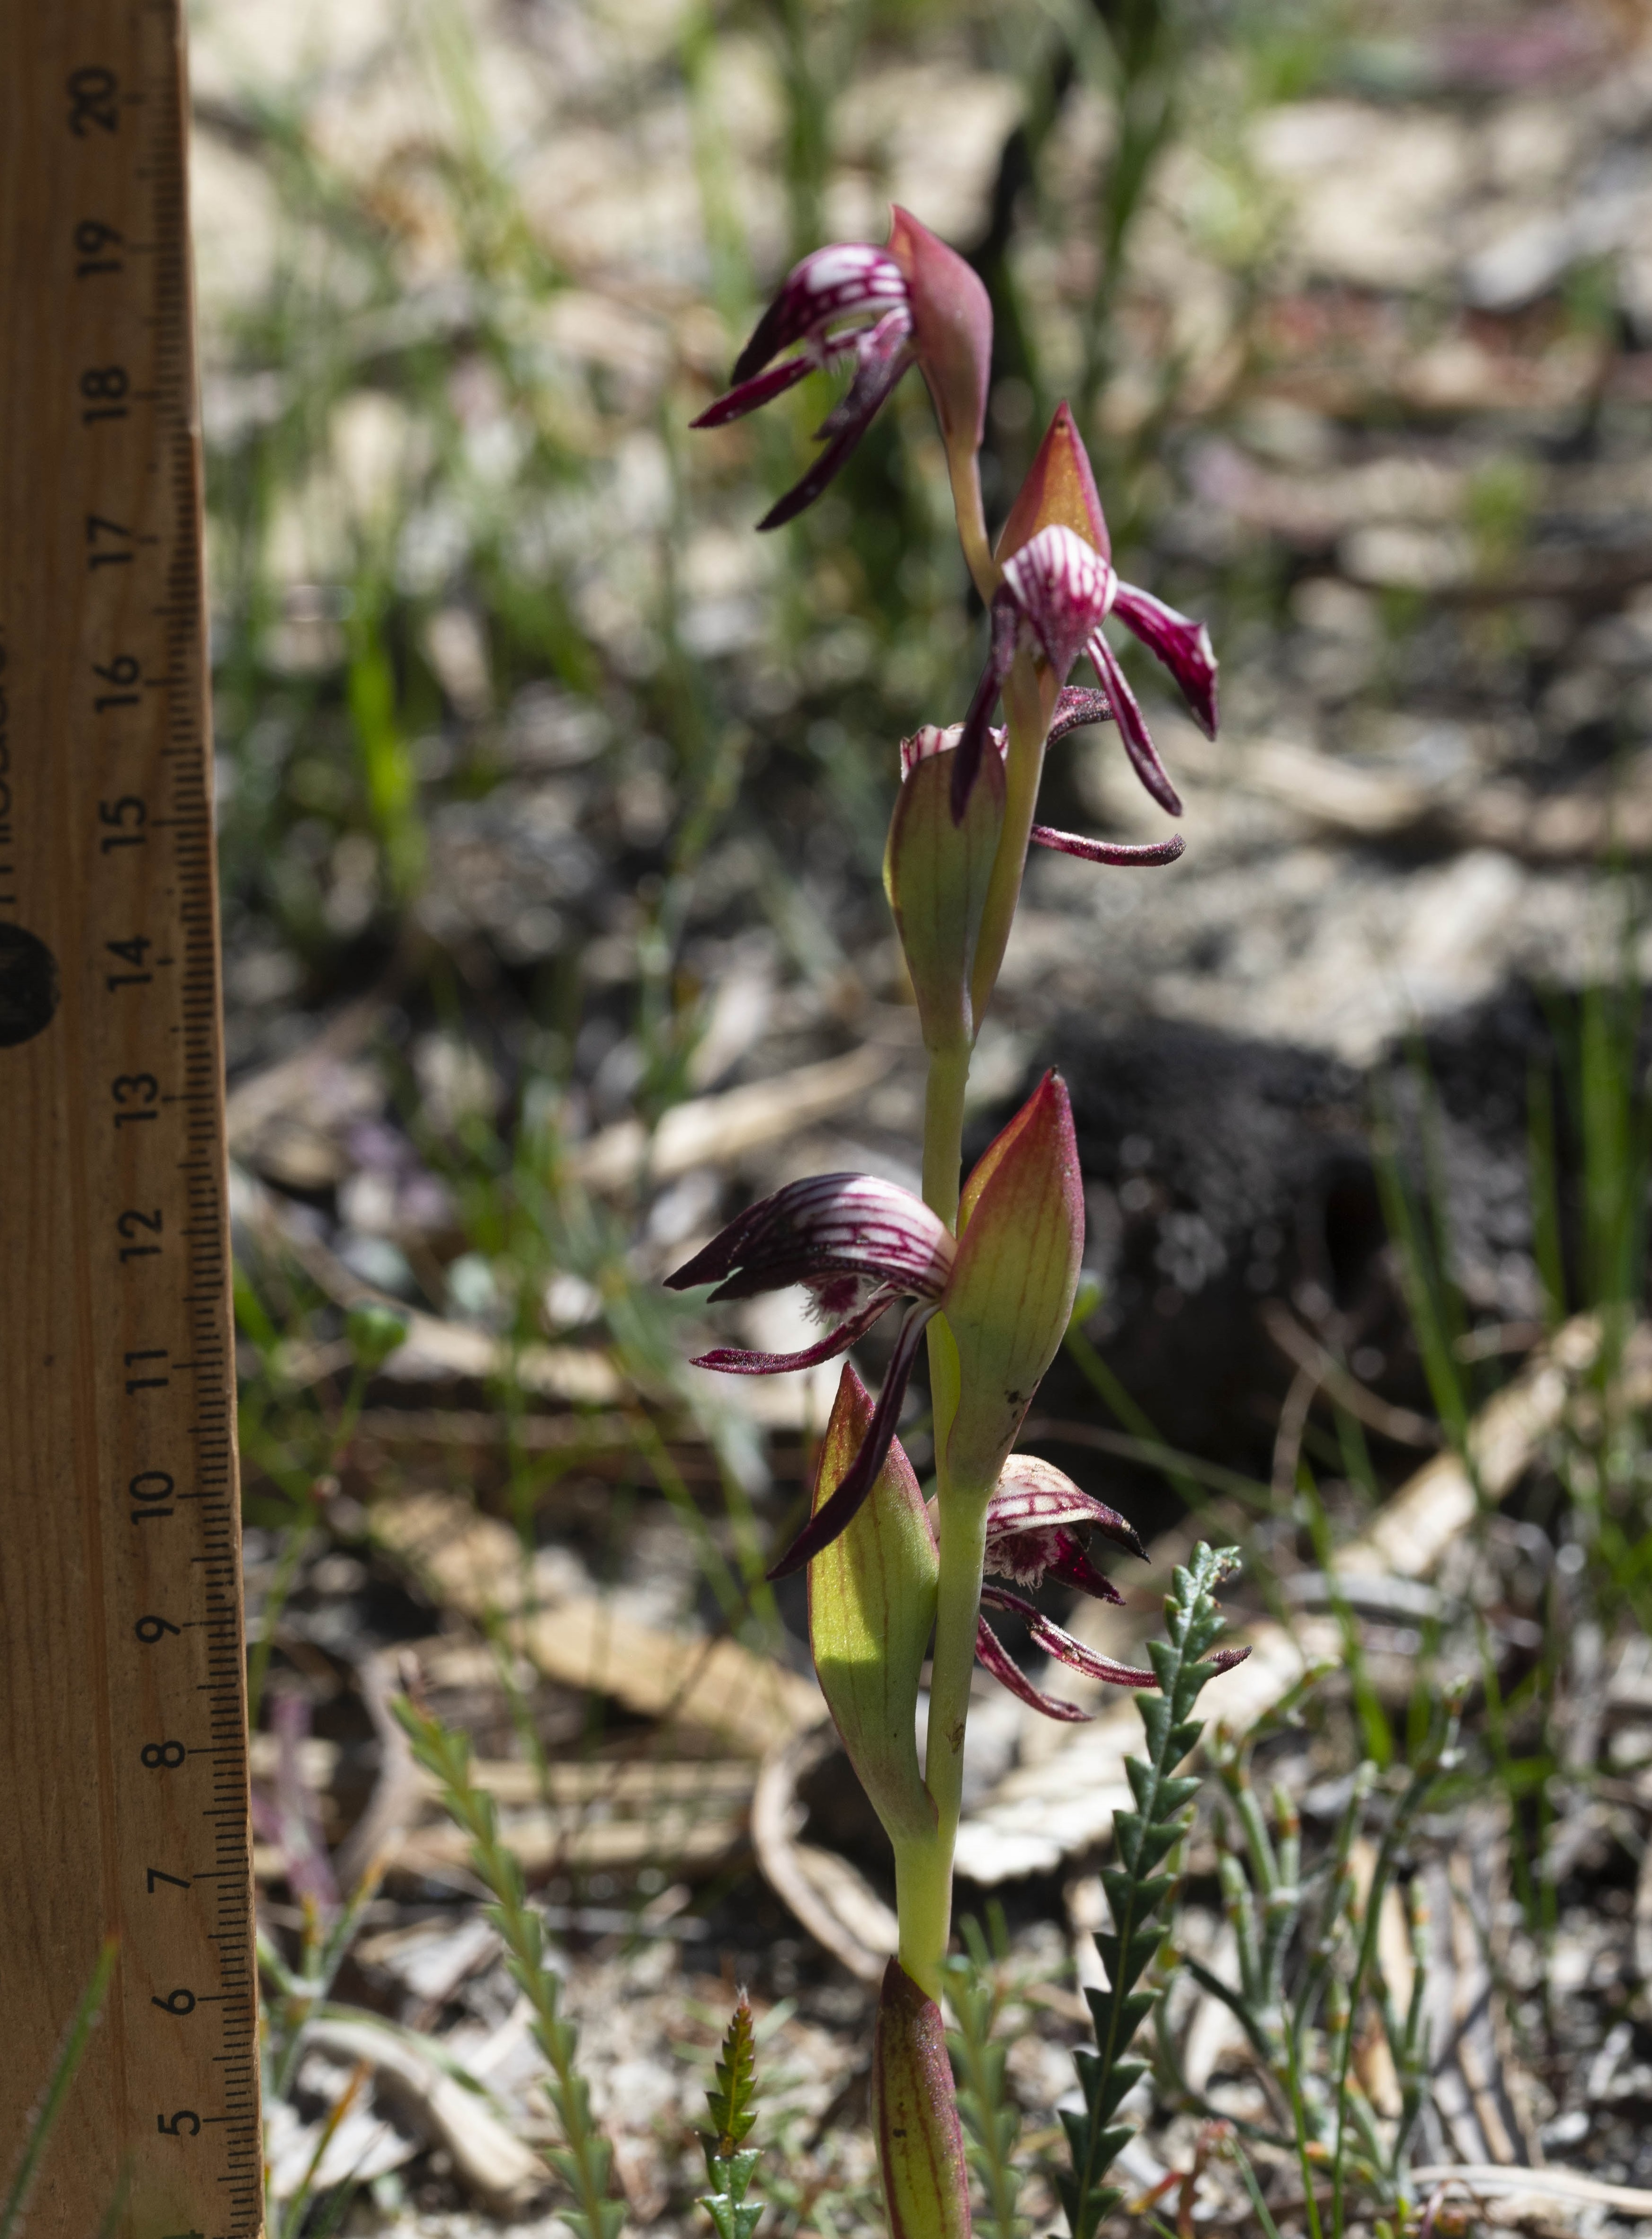 Pyrorchis nigricans plant